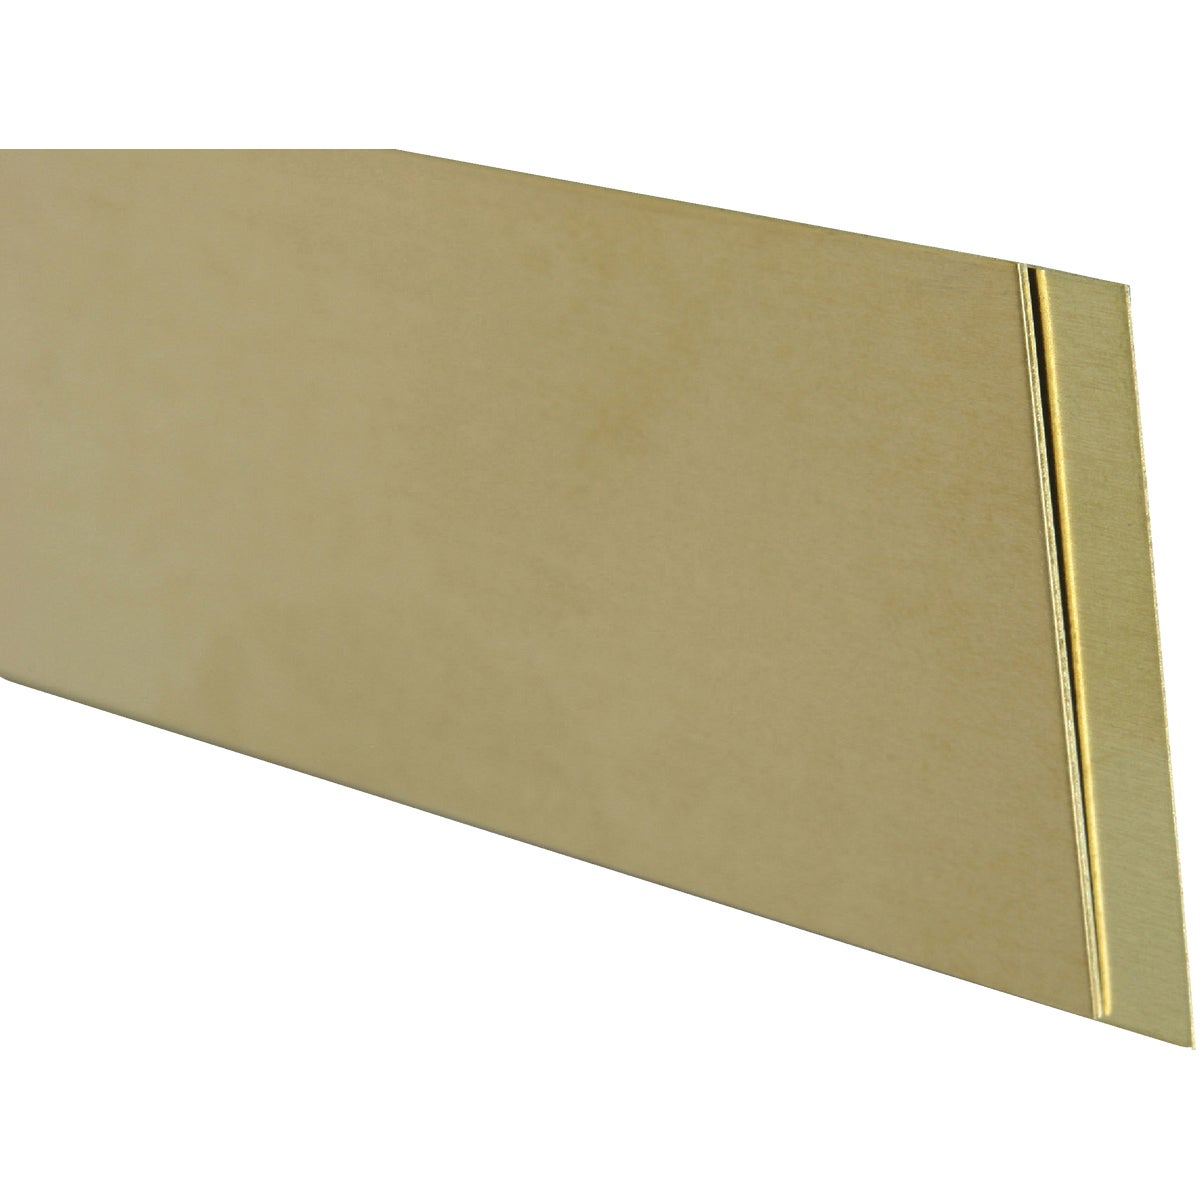 .032X2X12 BRASS STRIP - 8244 by K&s Precision Metals